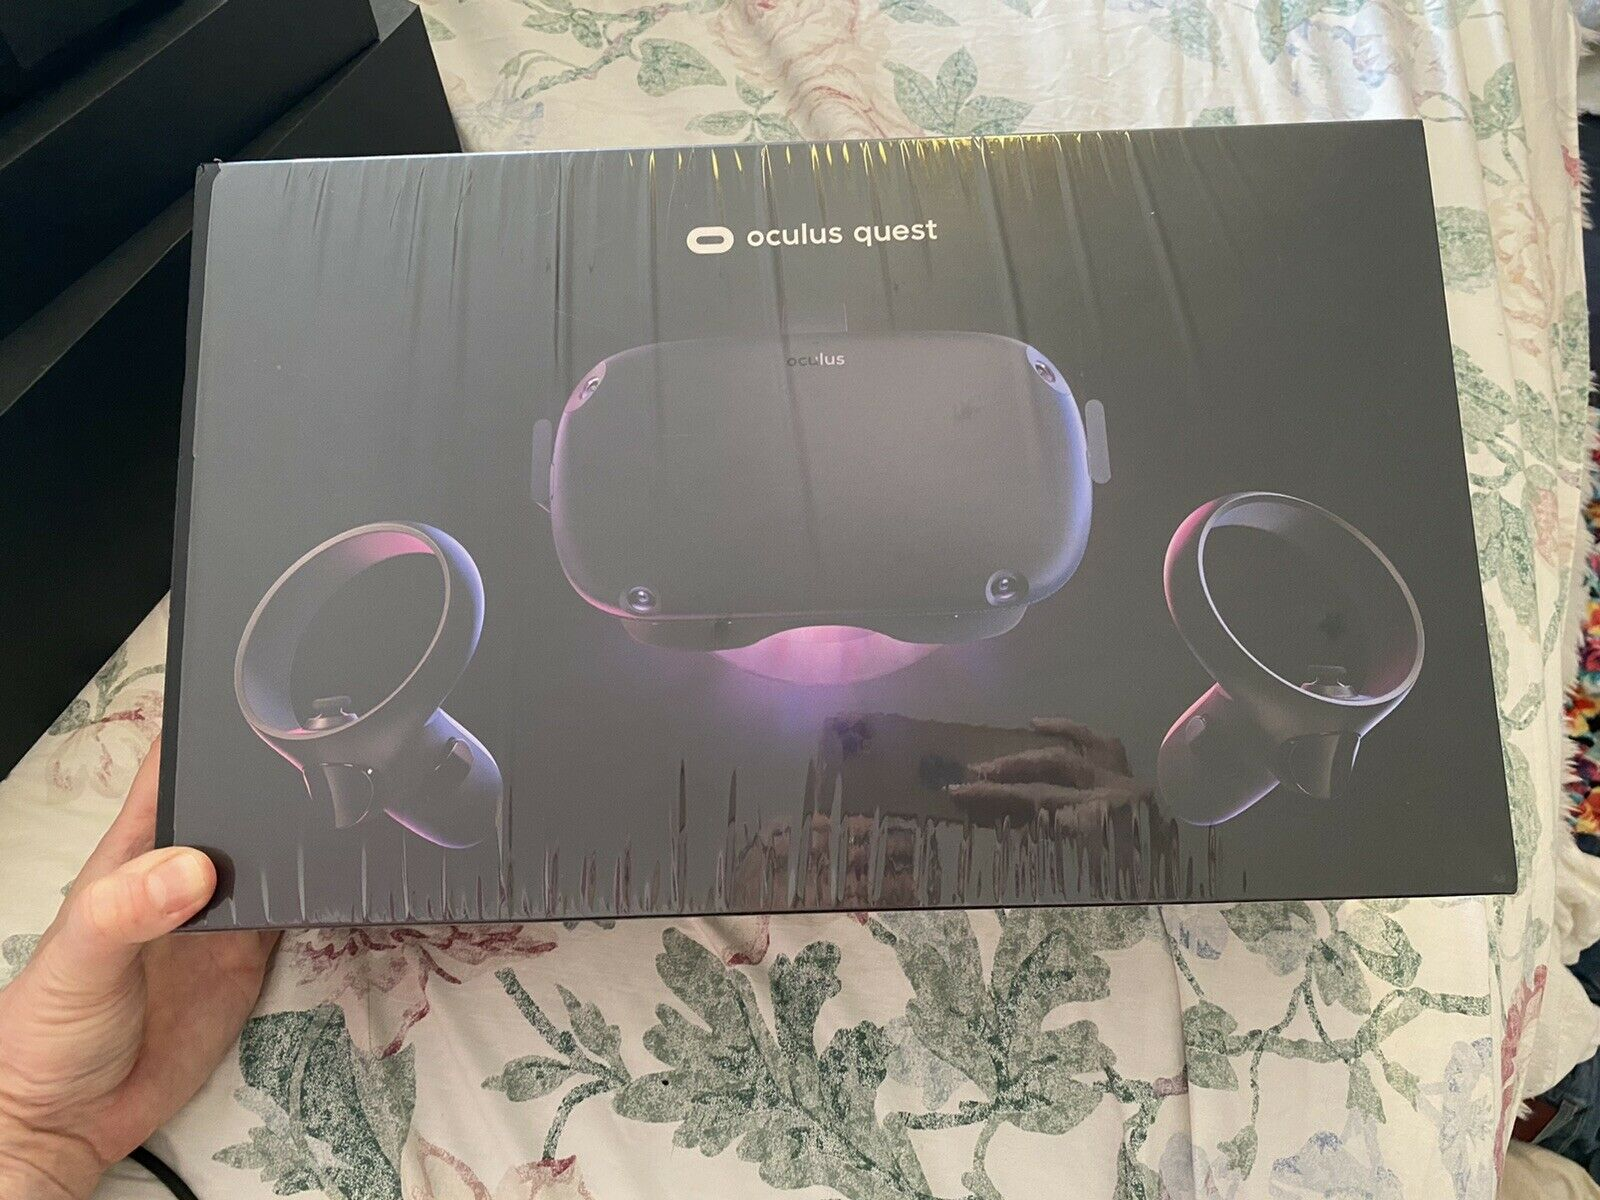 ‼️Oculus Quest 1 All-in-one VR Gaming Headset - Black, 64gb. #2‼️